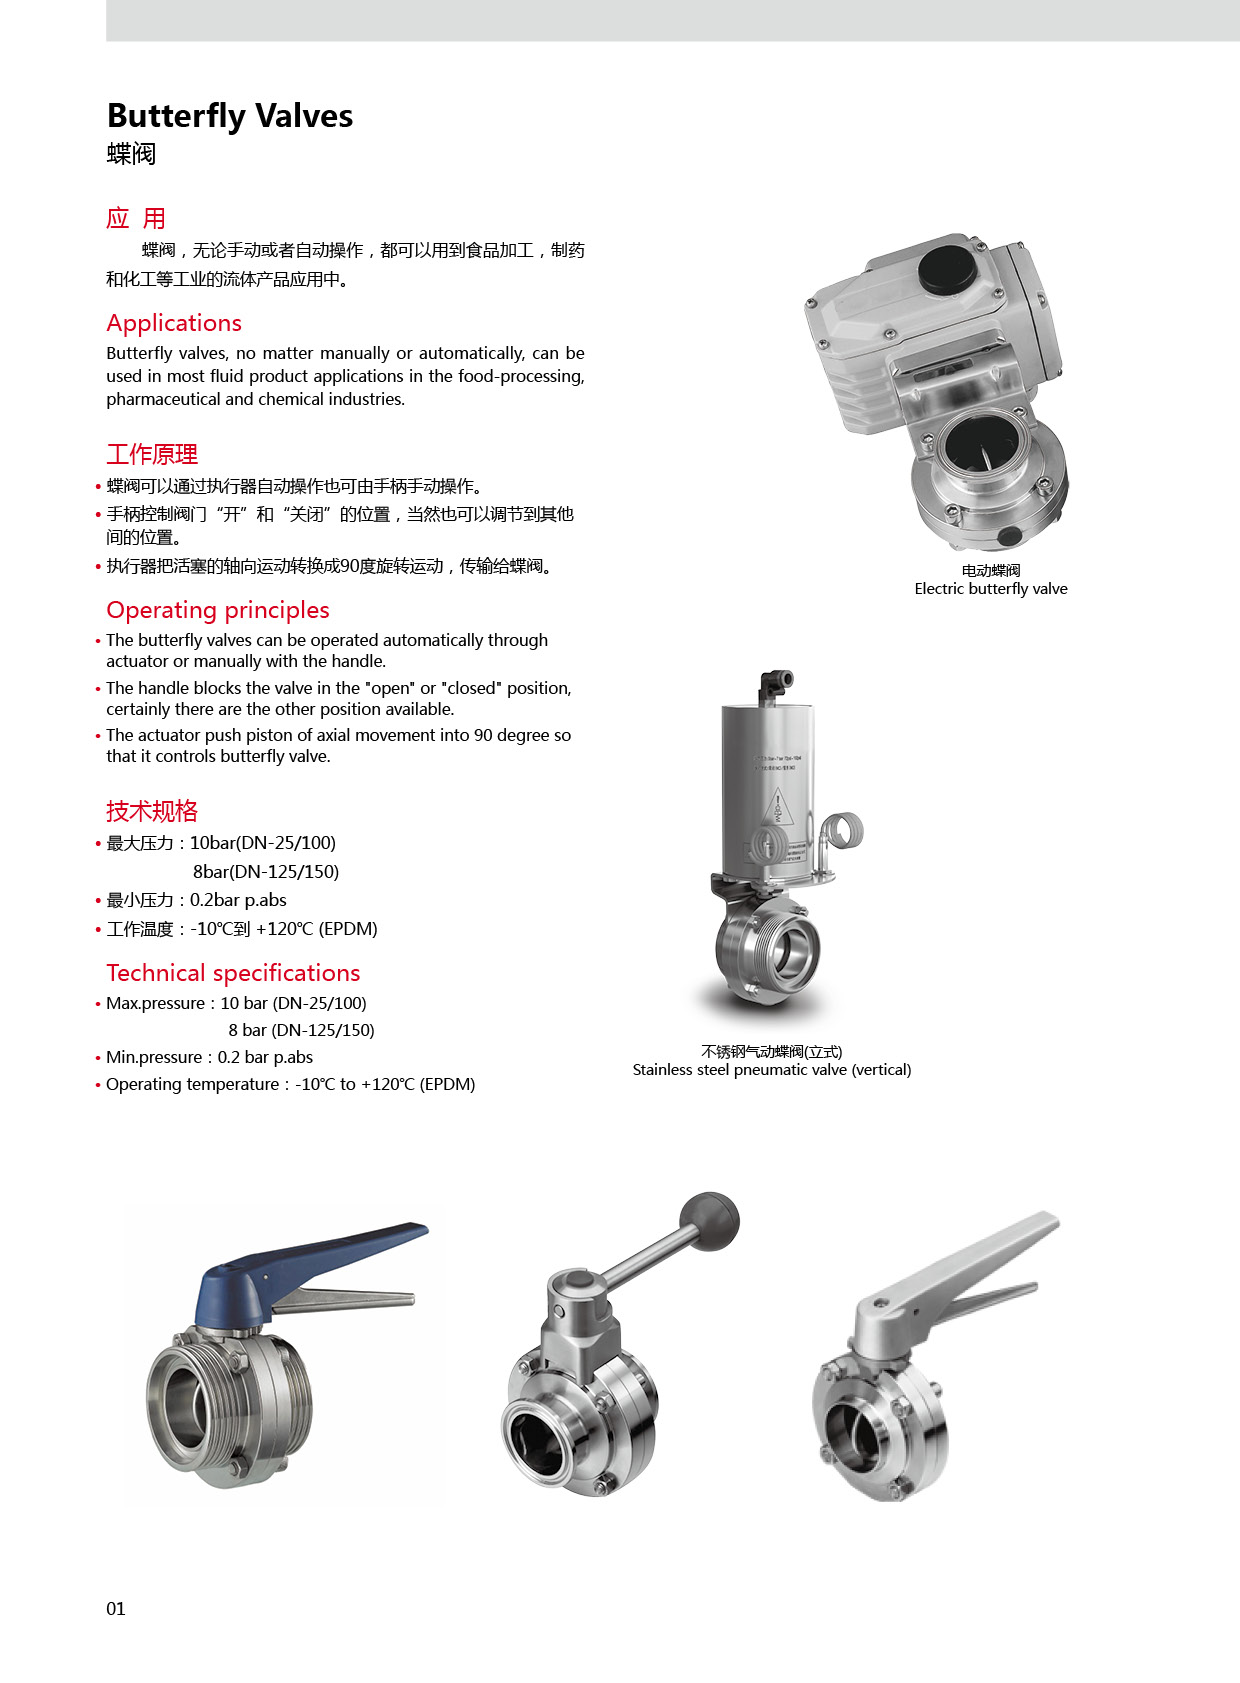 Catalogues of Butterfly Valves